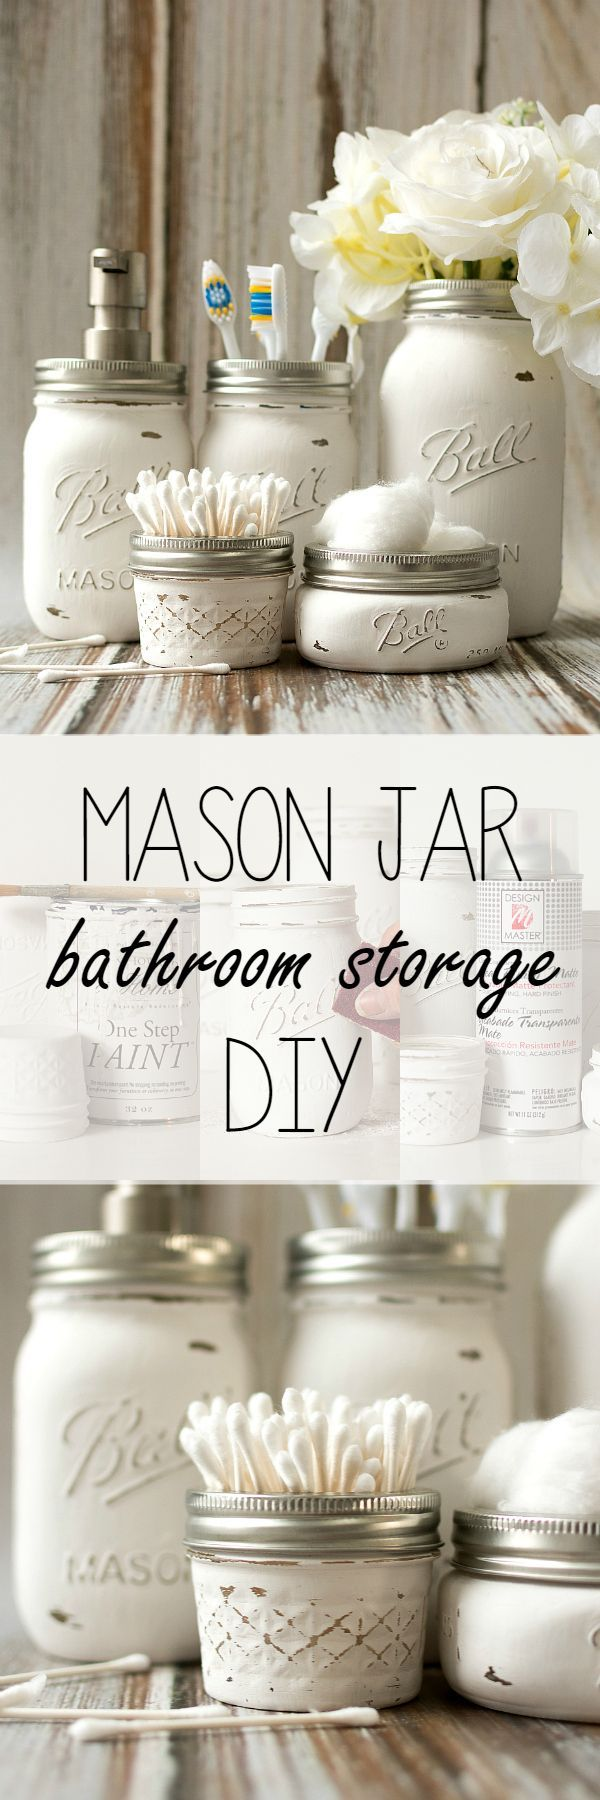 Rustic bathroom storage - Diy Bathroom Organizer Ideas Do It Yourself Pretty Distressed Mason Jar Bathroom Organizers Craft Project